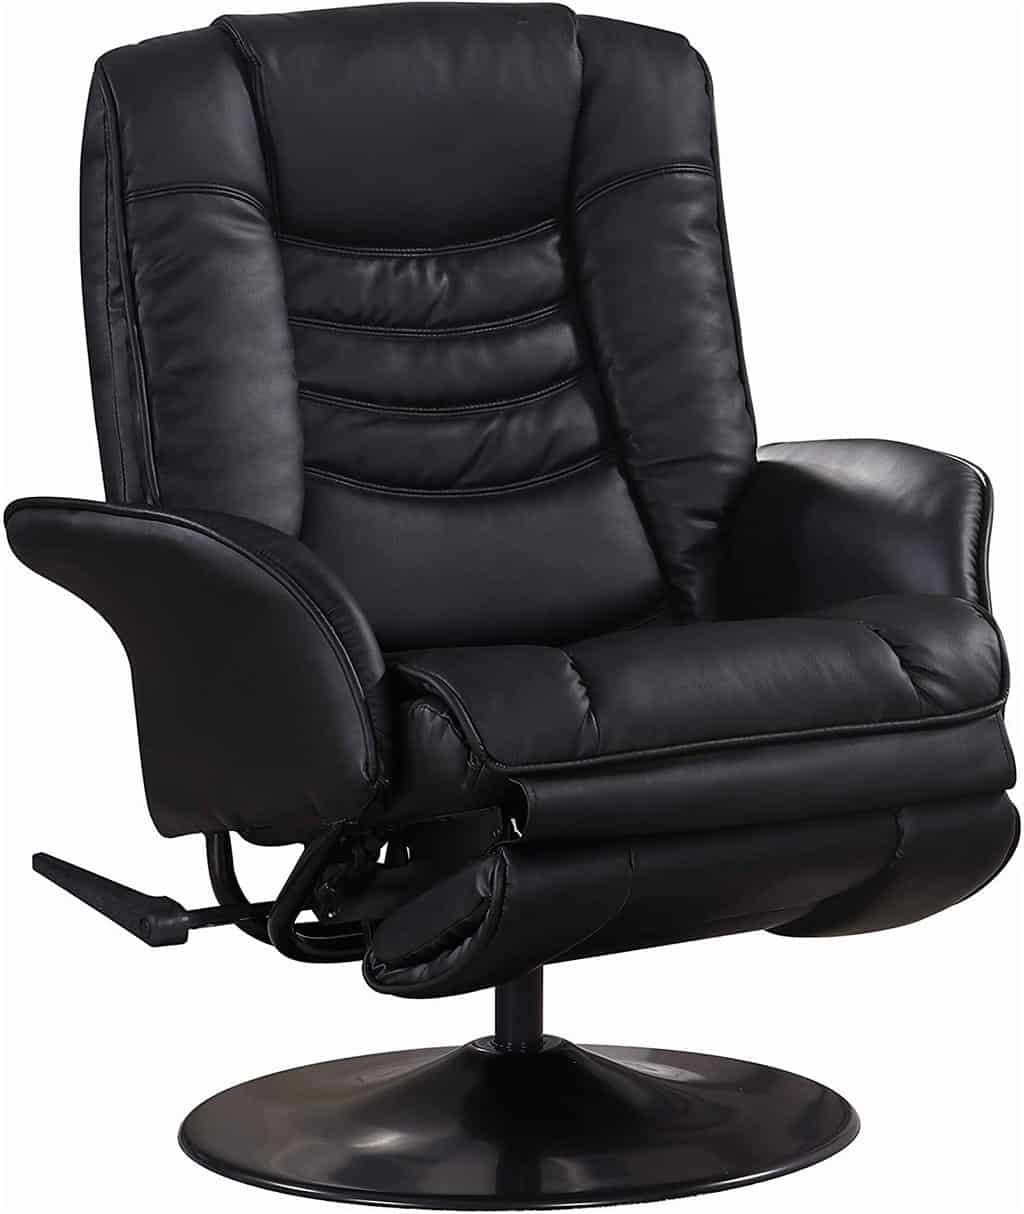 19. Coaster Home Furnishings Swivel Recliner